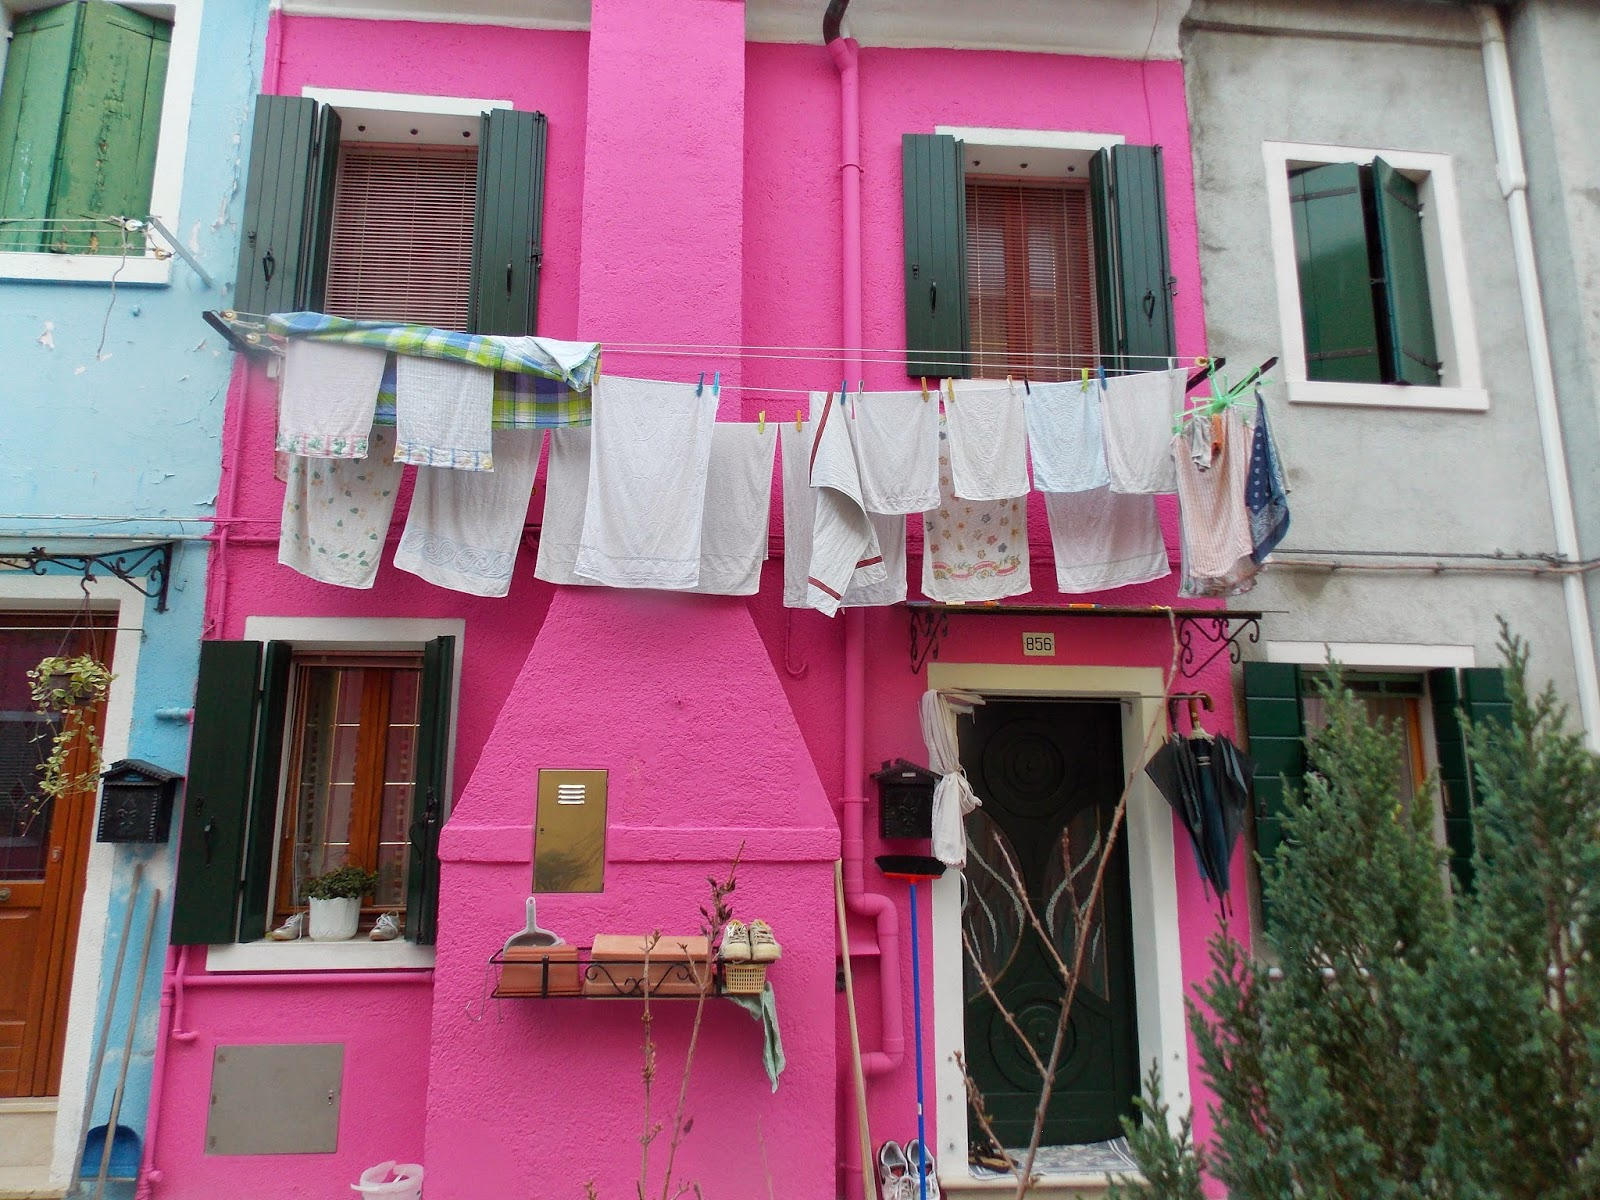 Home To Italy: Burano, Italy: The Colors that capture your attention